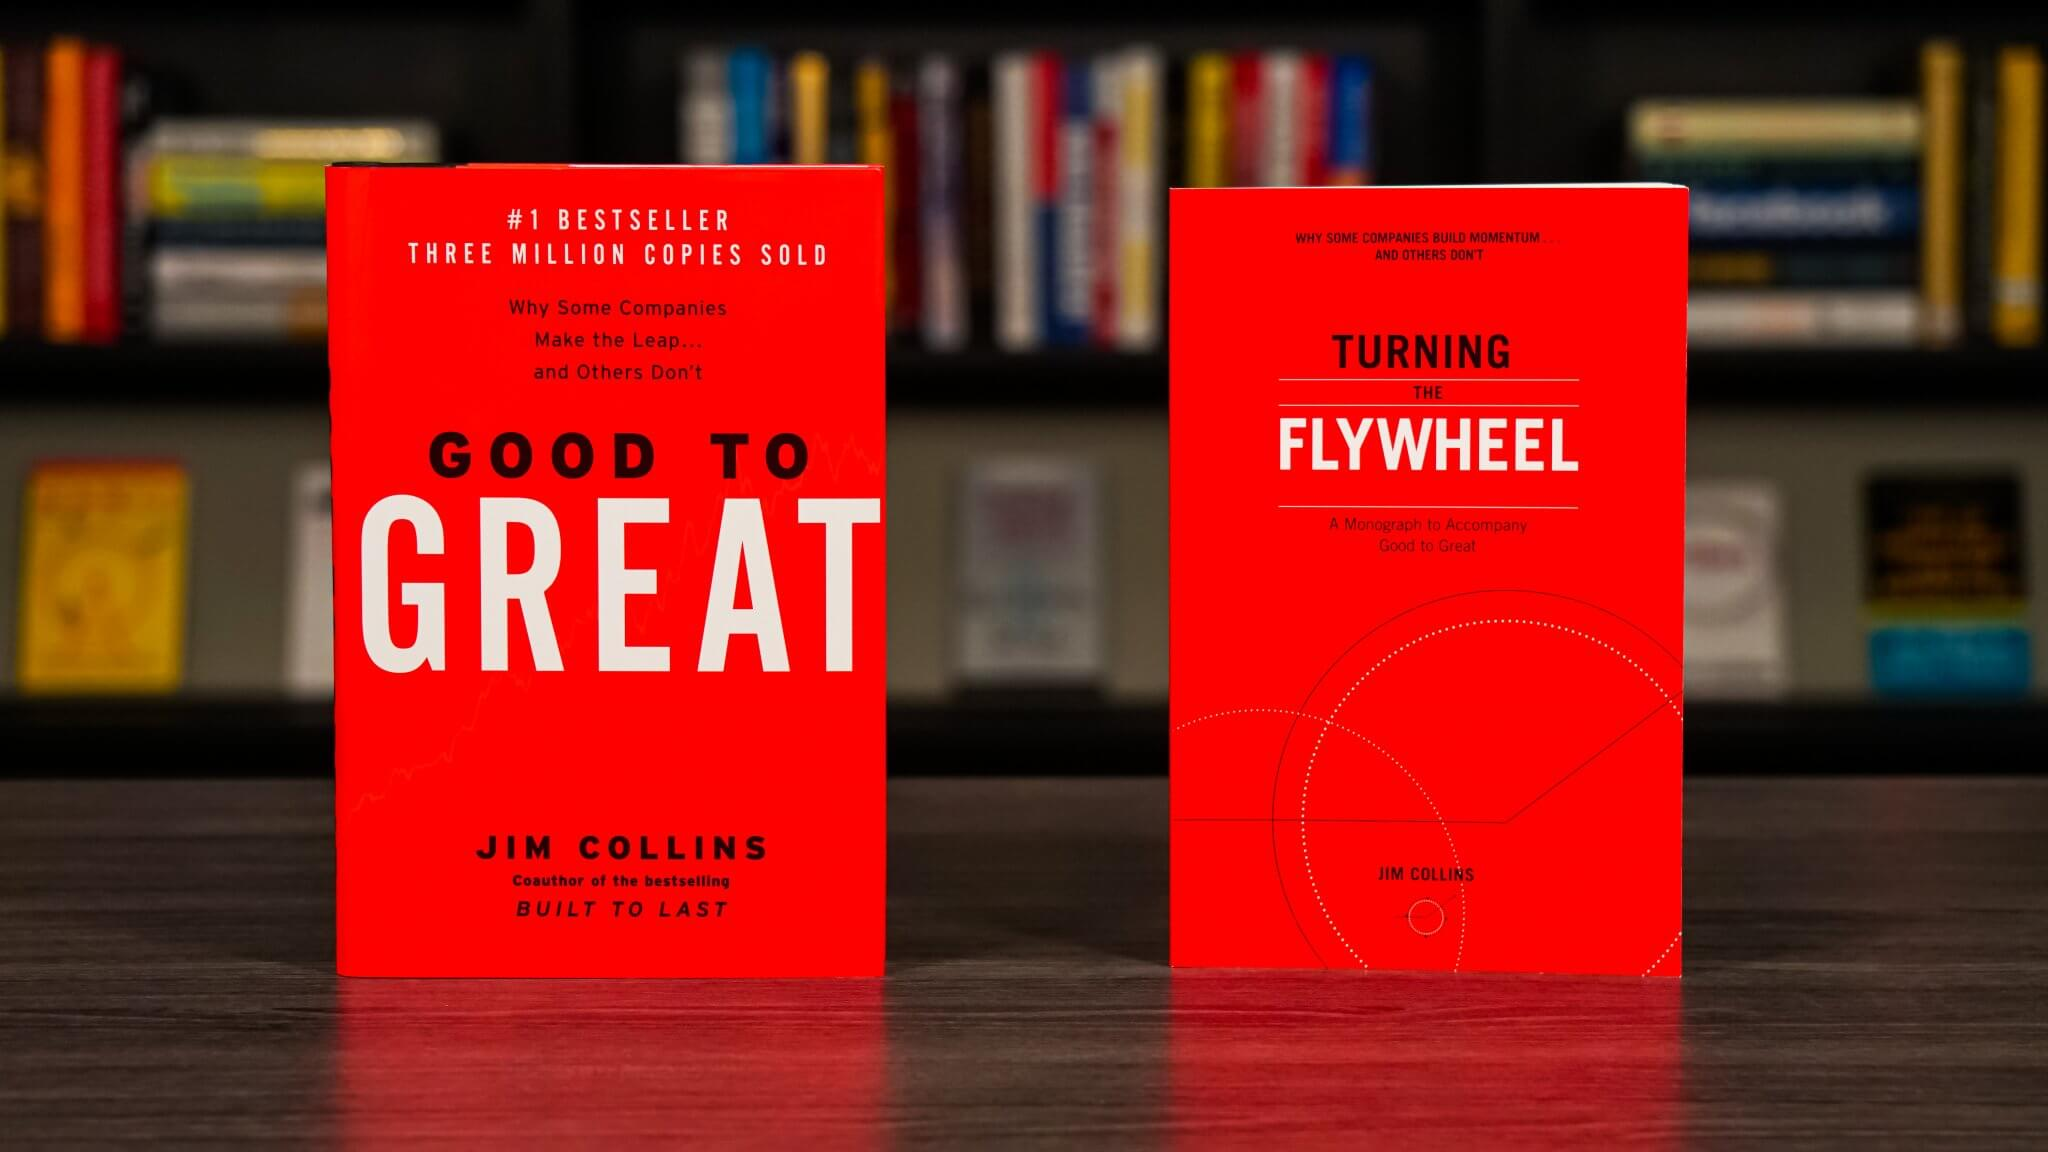 Good To Great And Turning The Flywheel By Jim Collins Book Covers